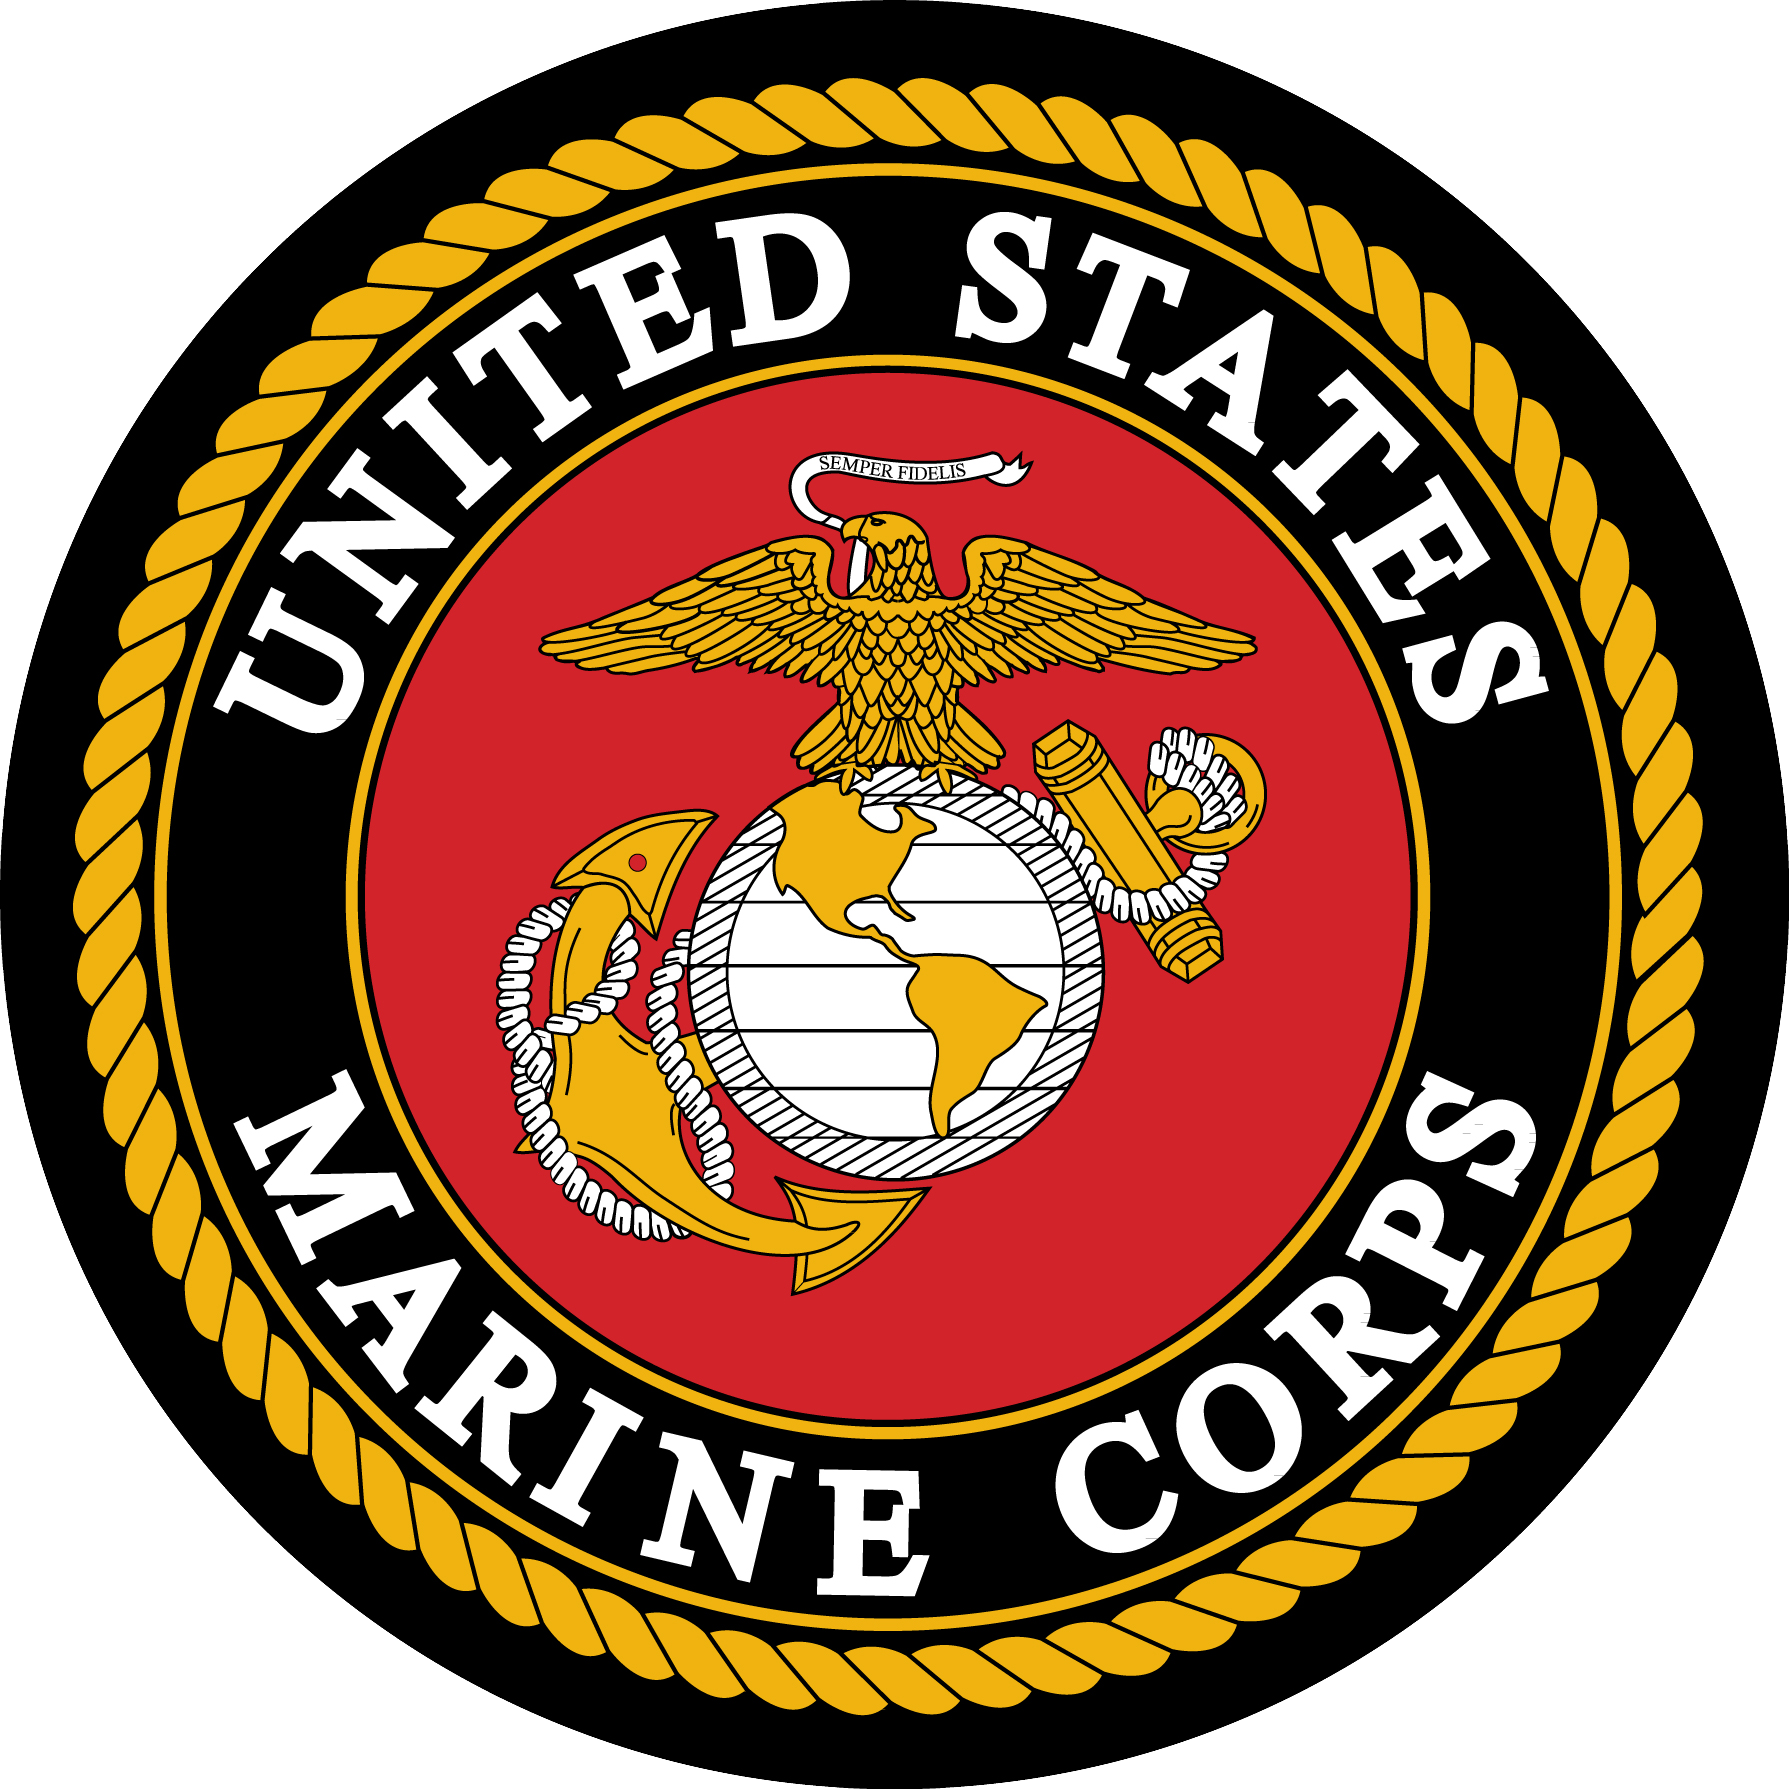 Marine corp clipart 6 » Clipart Station.